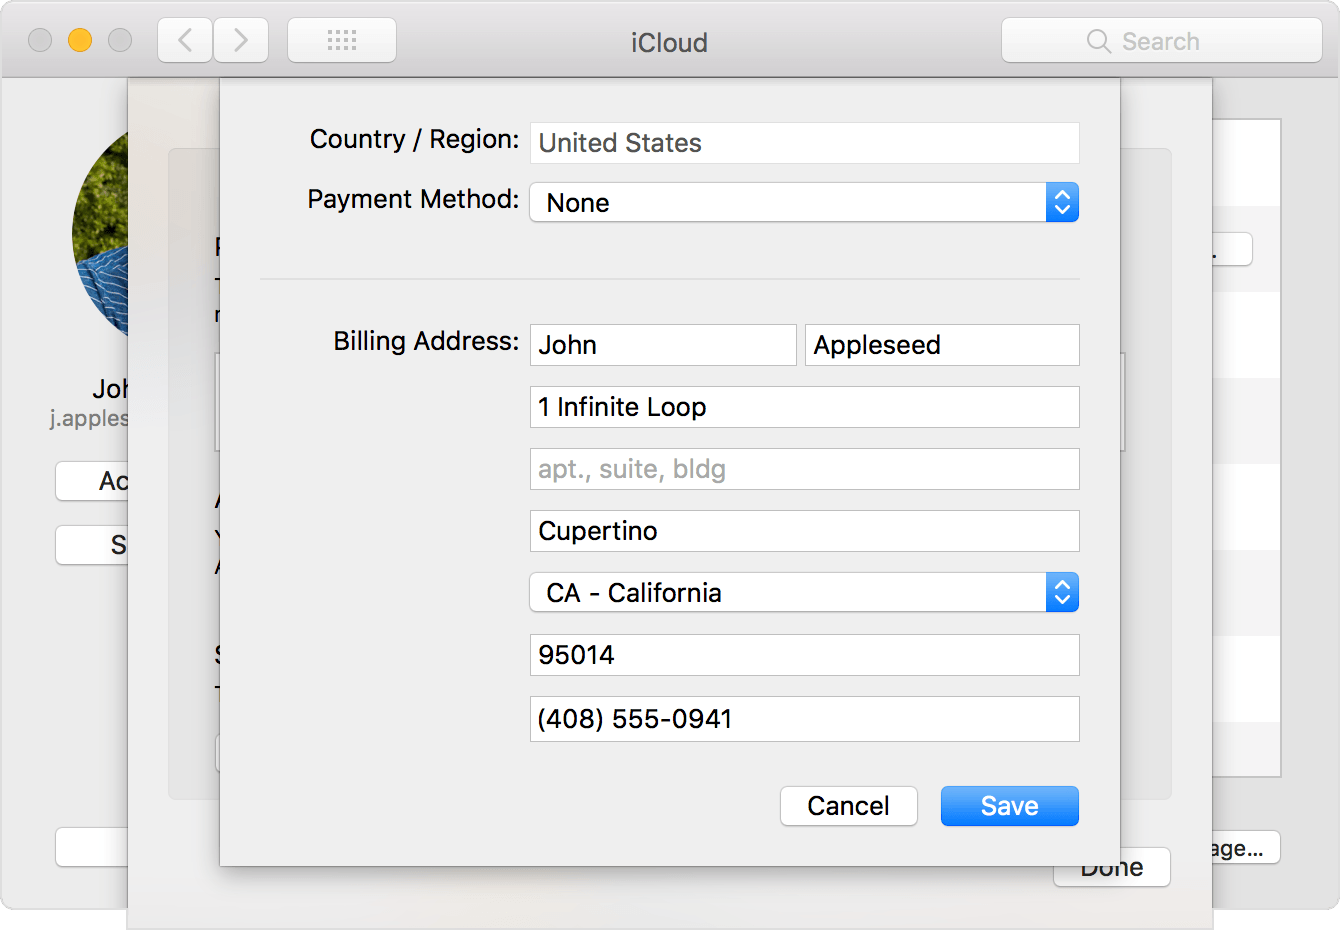 Updating icloud account information